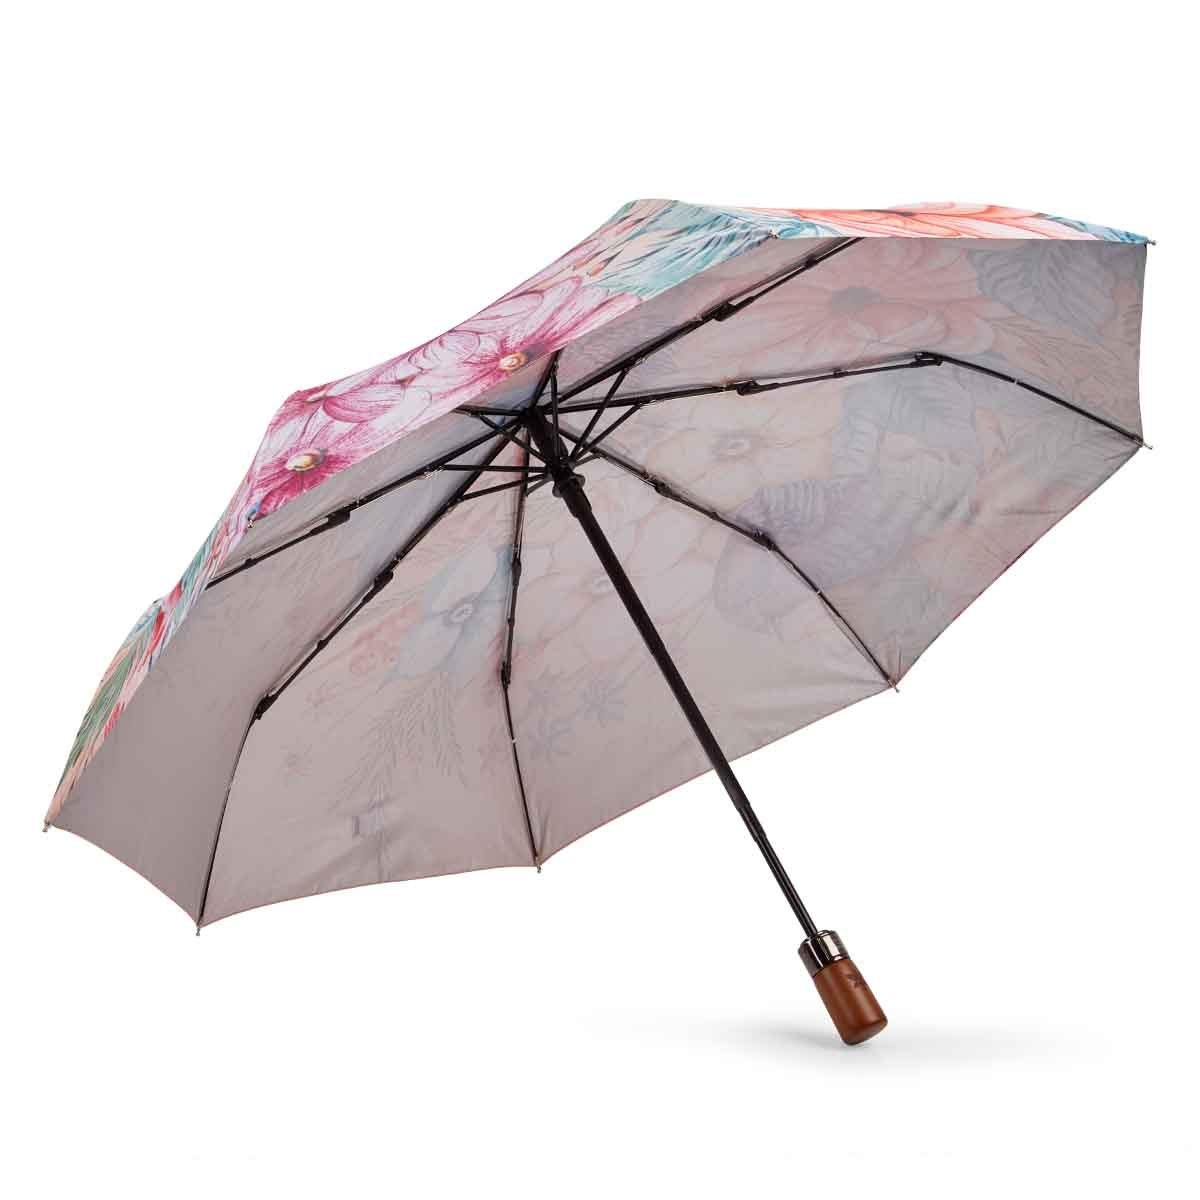 Printed Vintage Garden UV+ umbrella